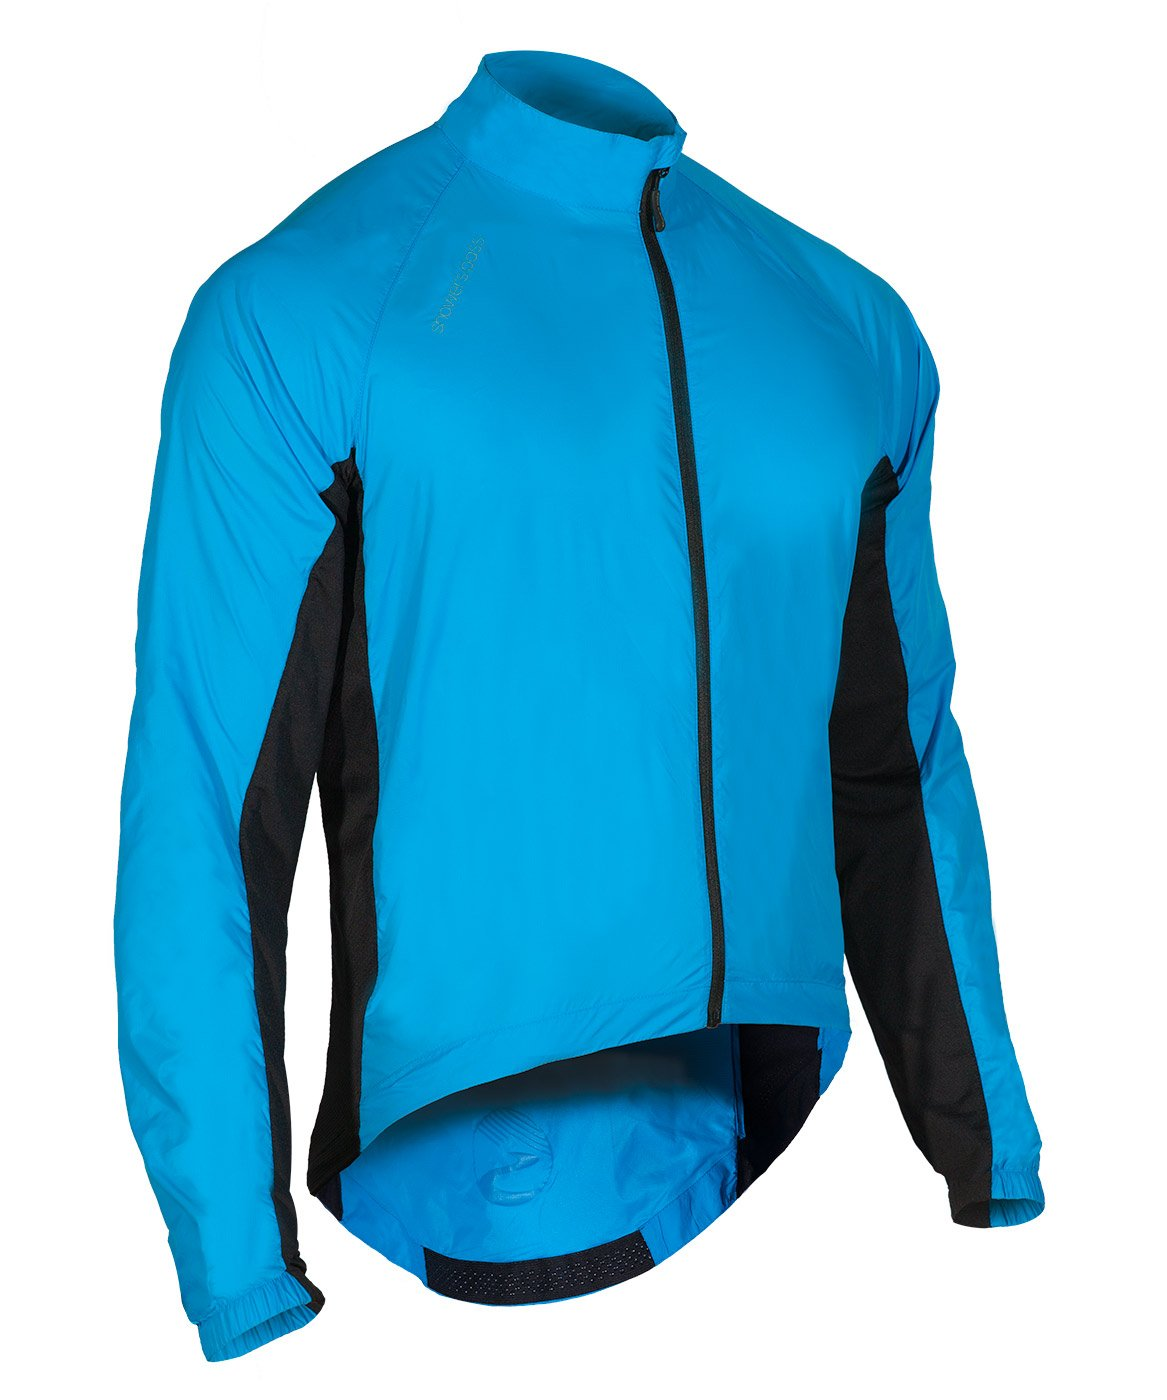 Ultralight Wind Jacket